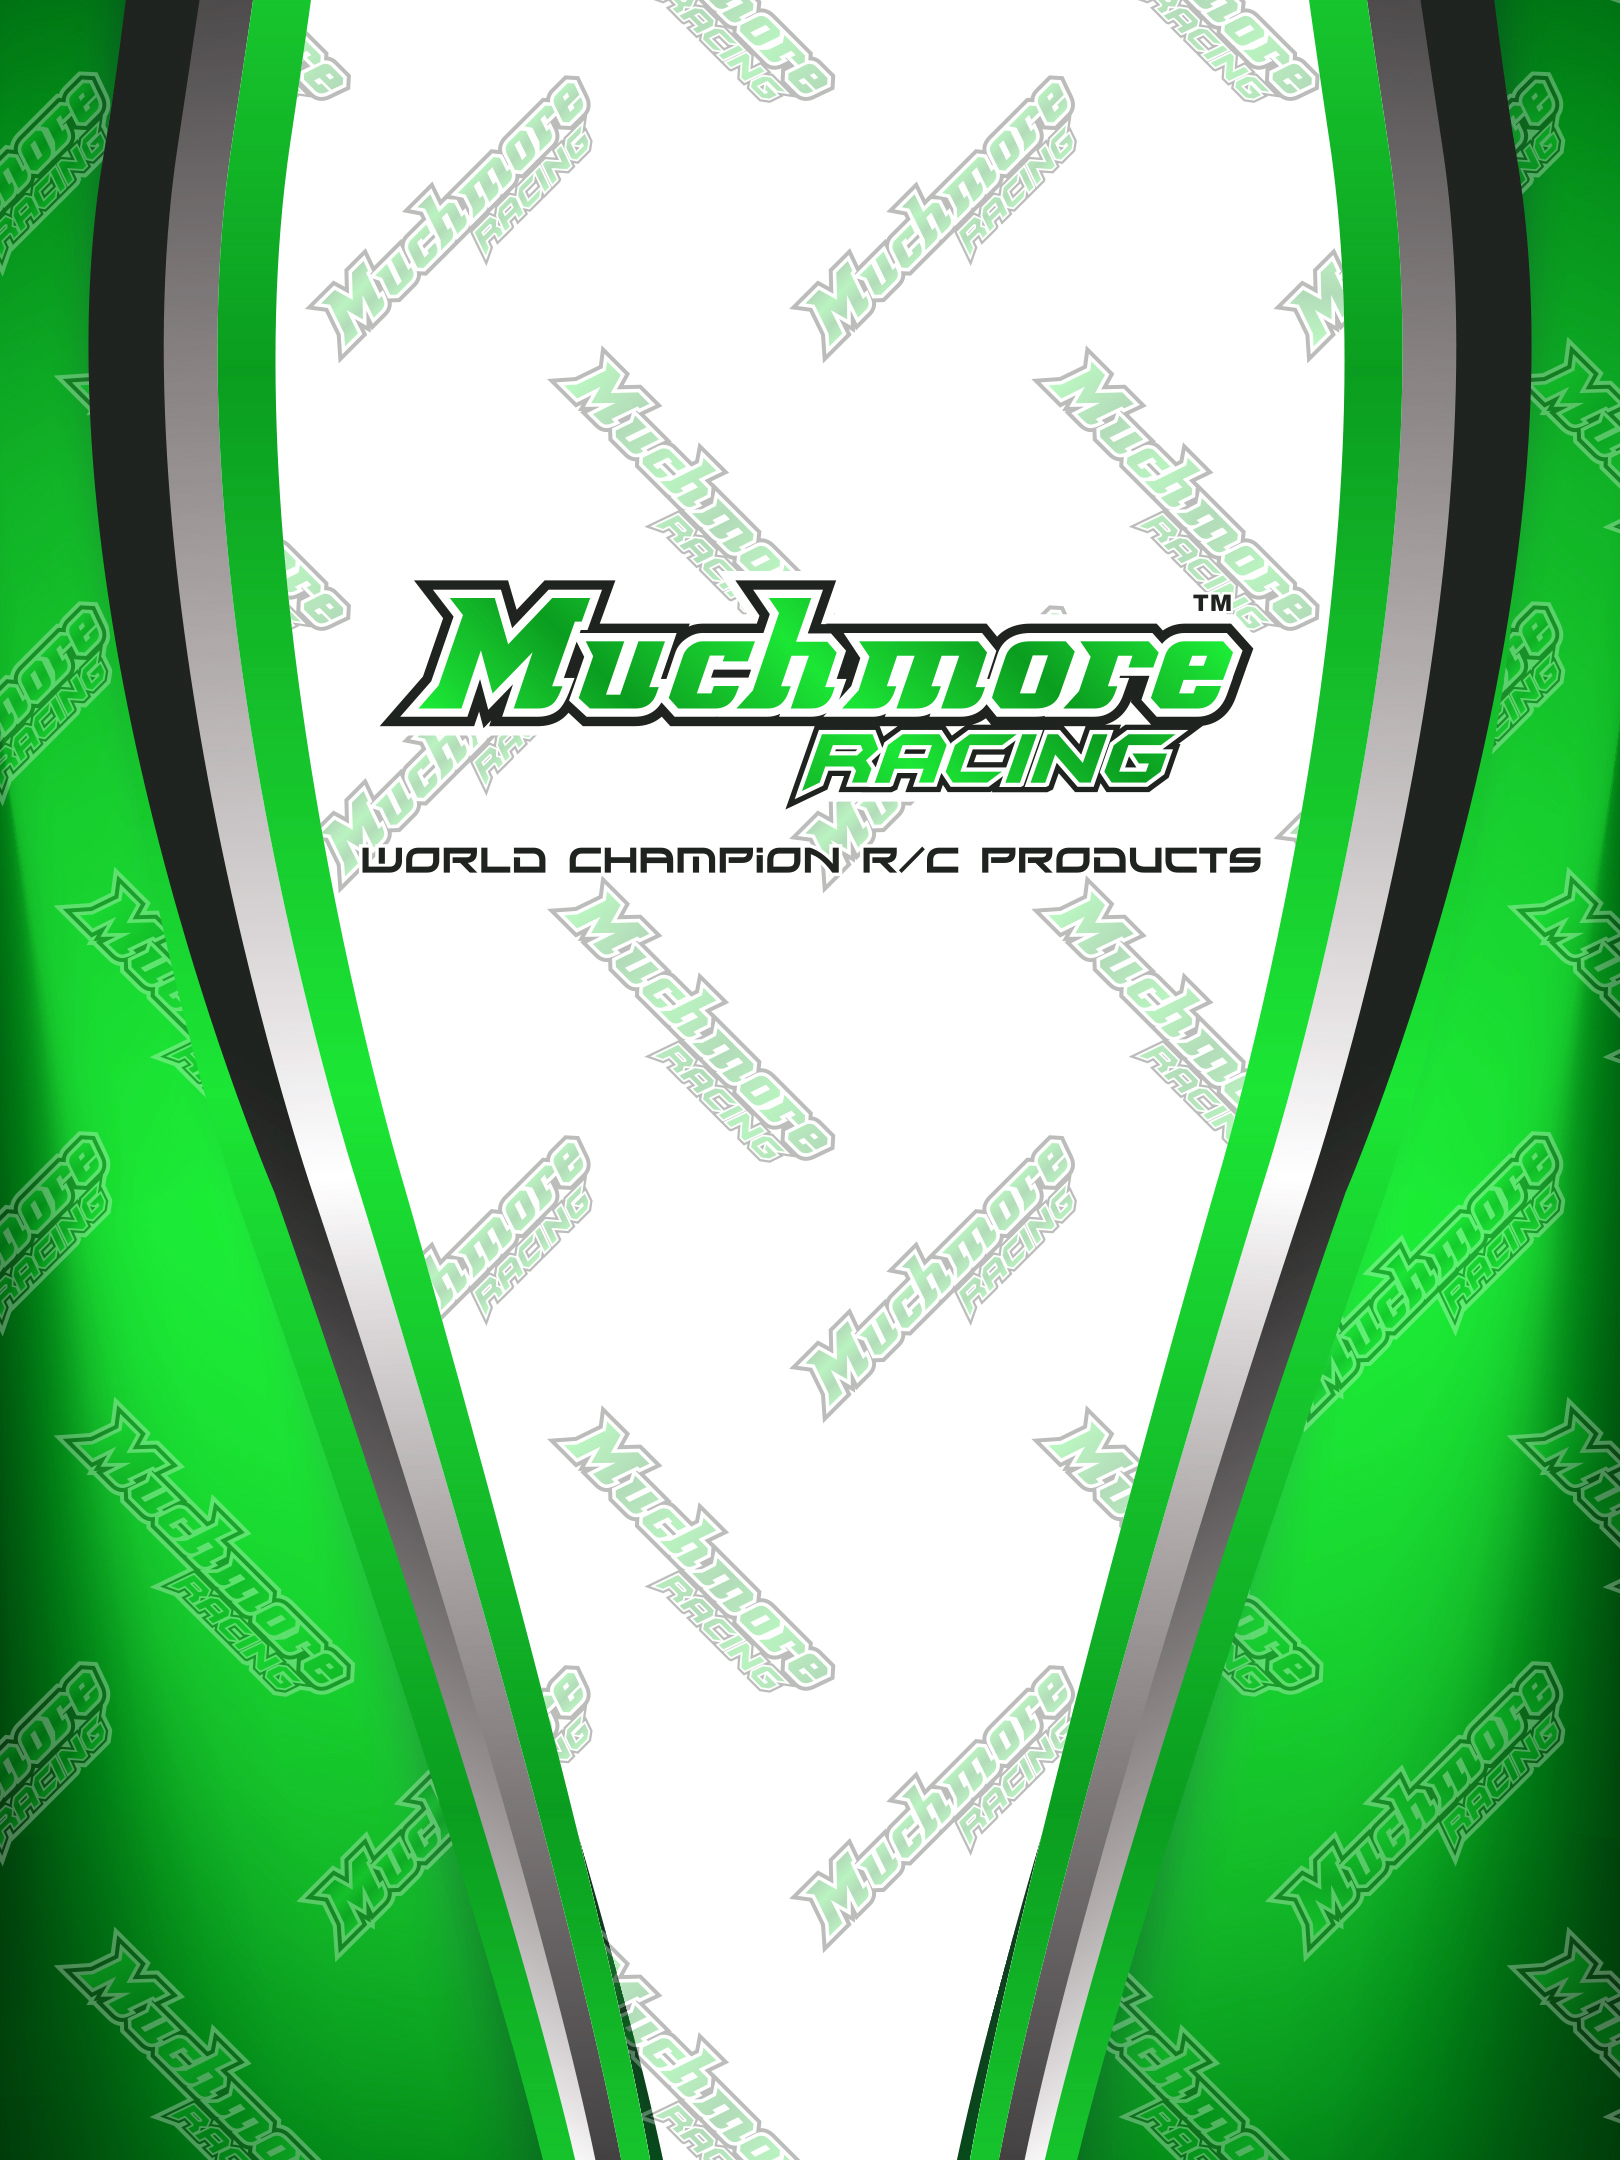 MuchmoreRacing_Wallpaper_Green_Ver_Apple iPad 4by3 ratio.JPG